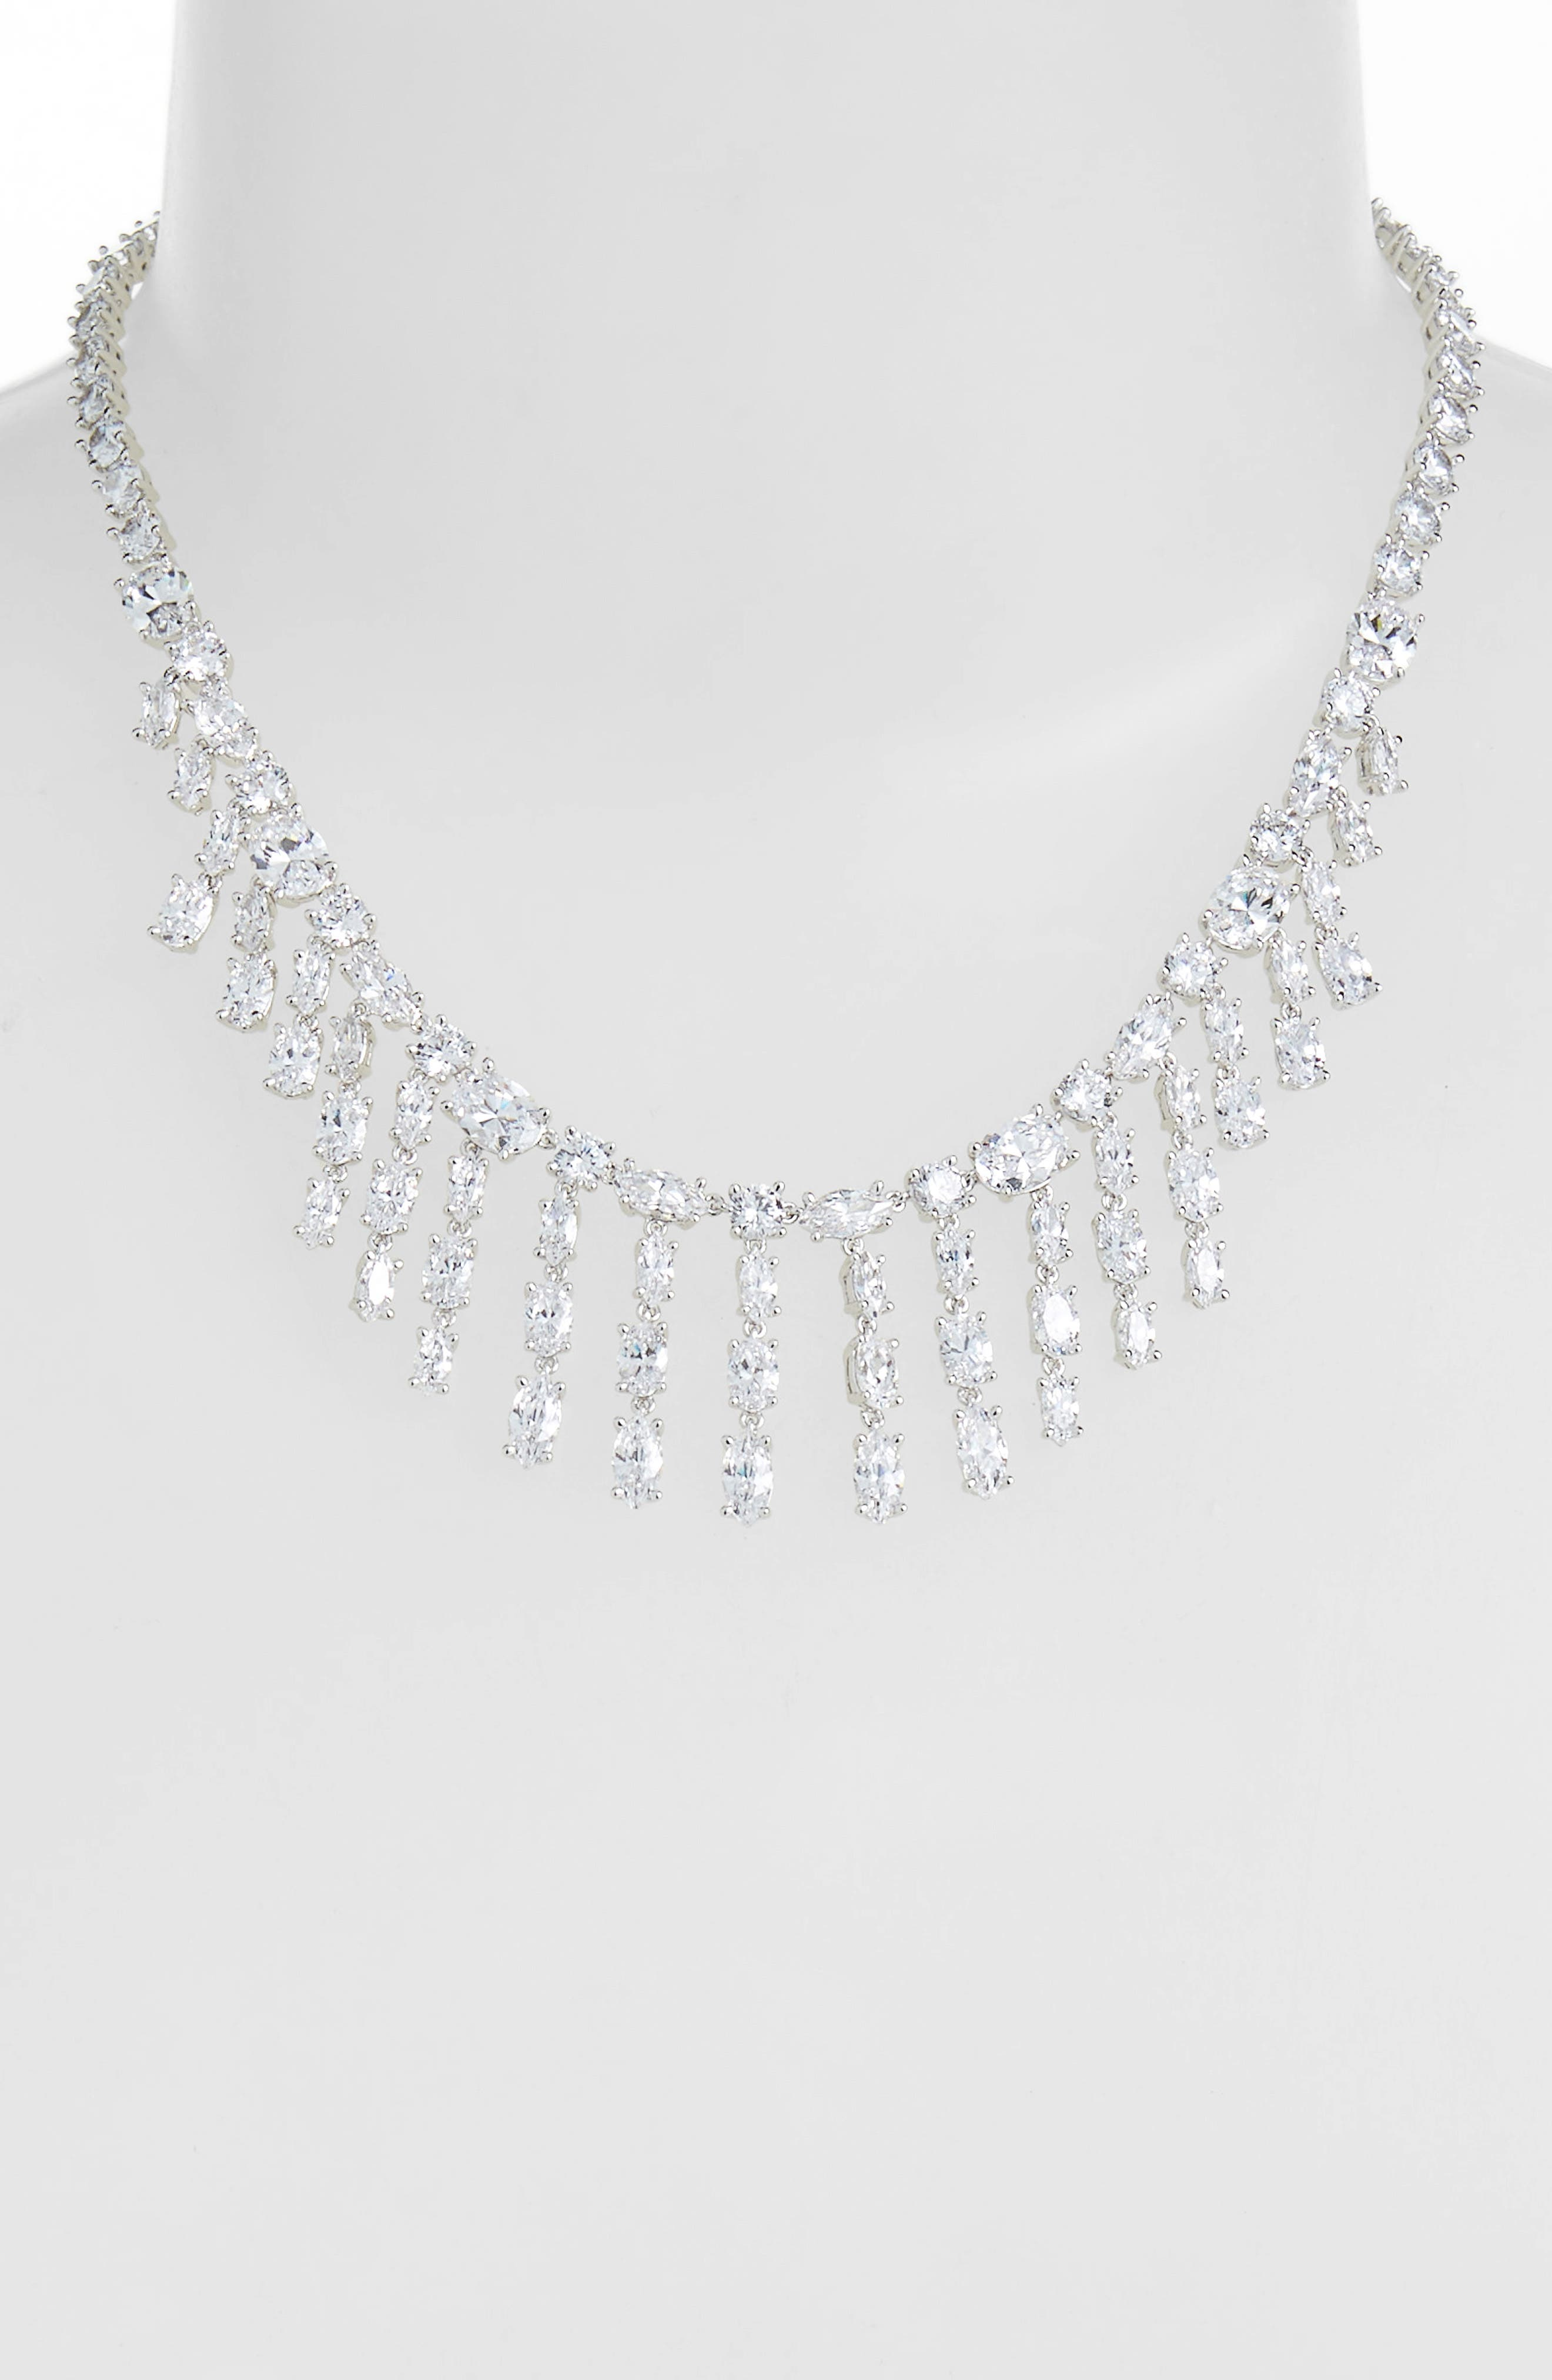 Cubic Zirconia Fringe Necklace,                             Alternate thumbnail 2, color,                             CLEAR- SILVER